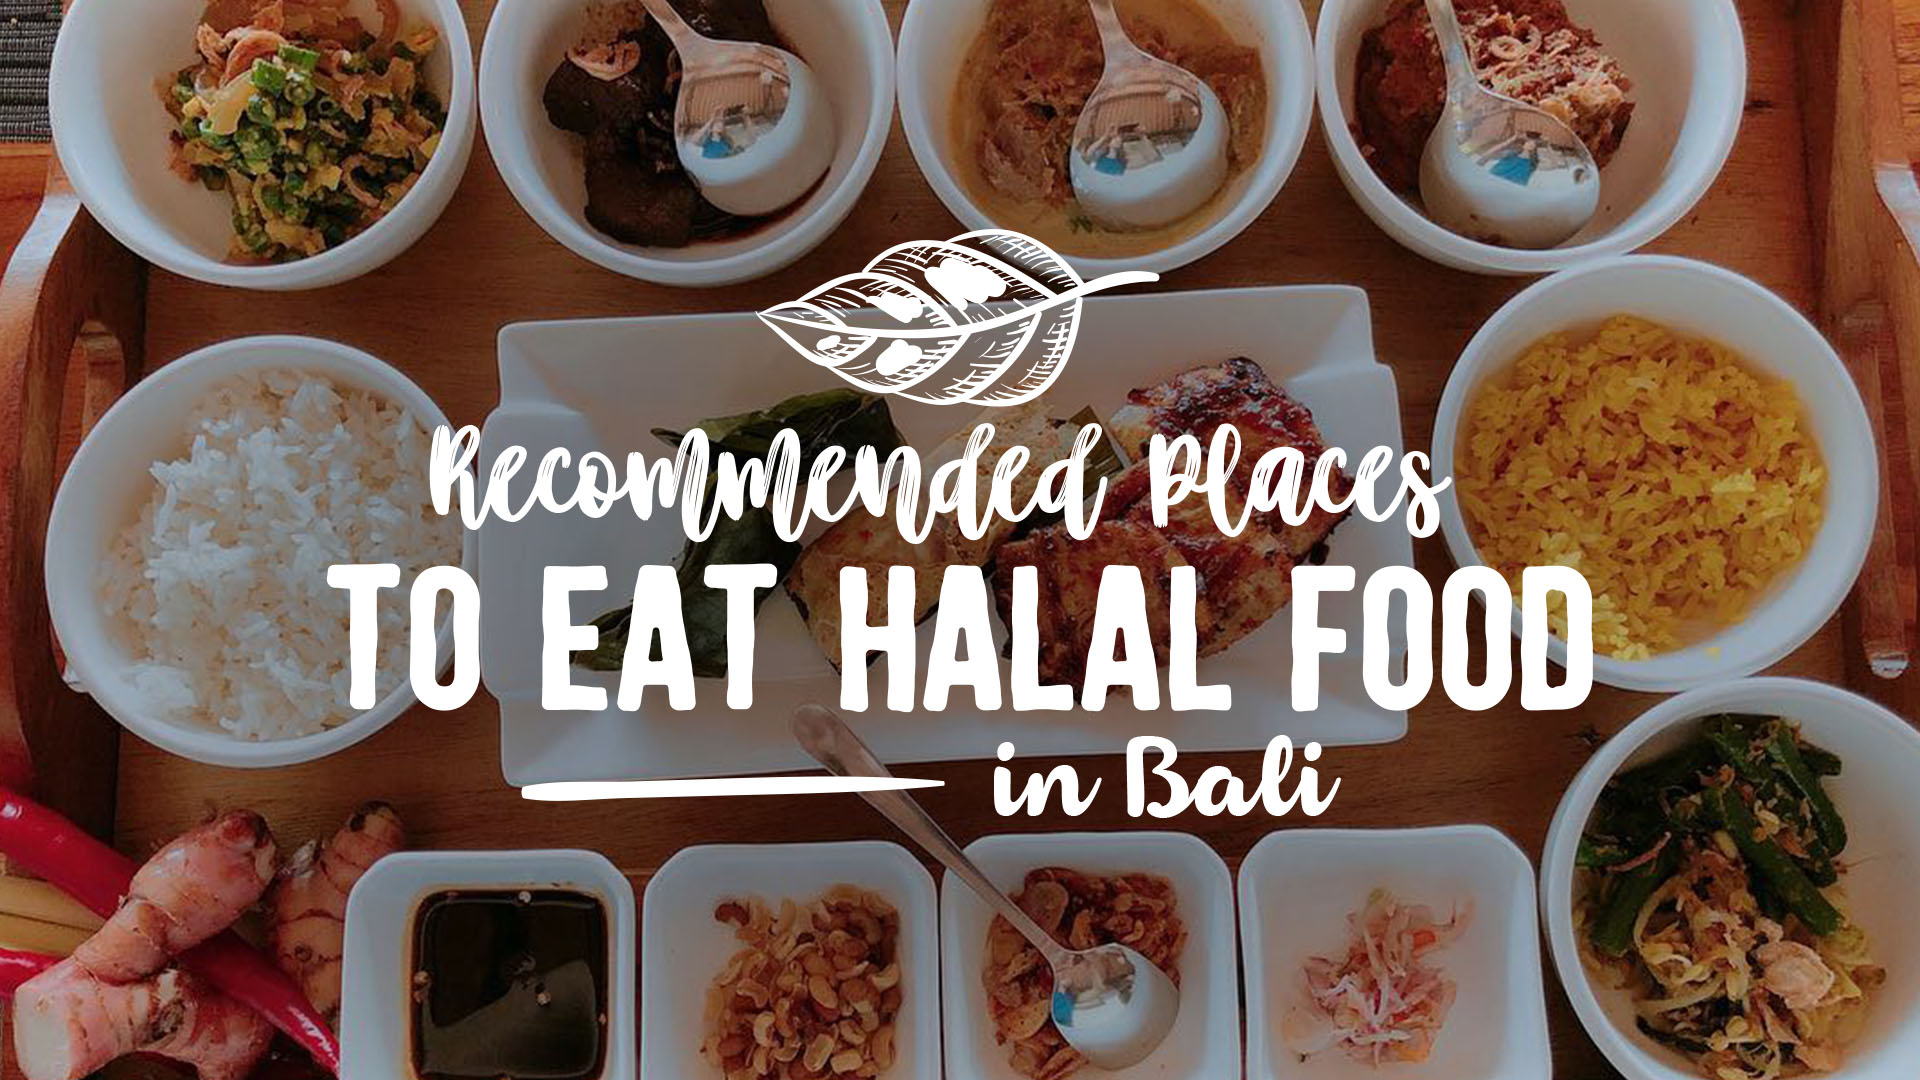 Recommended Places To Eat Halal Food In Bali Bali Go Live